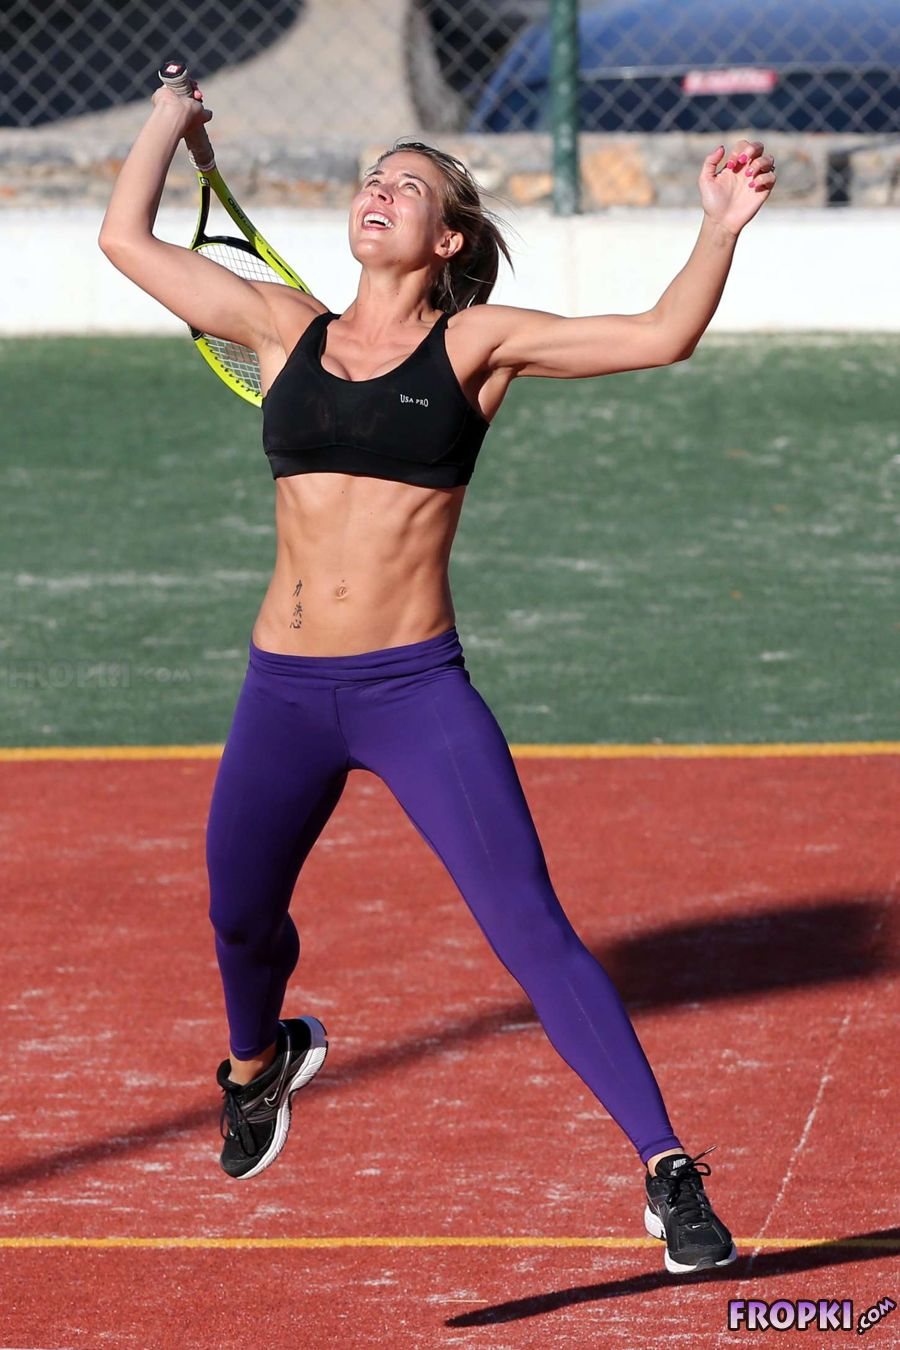 Gemma Atkinson Playing Tennis in Sports Bra | Hollywood Celebs ...